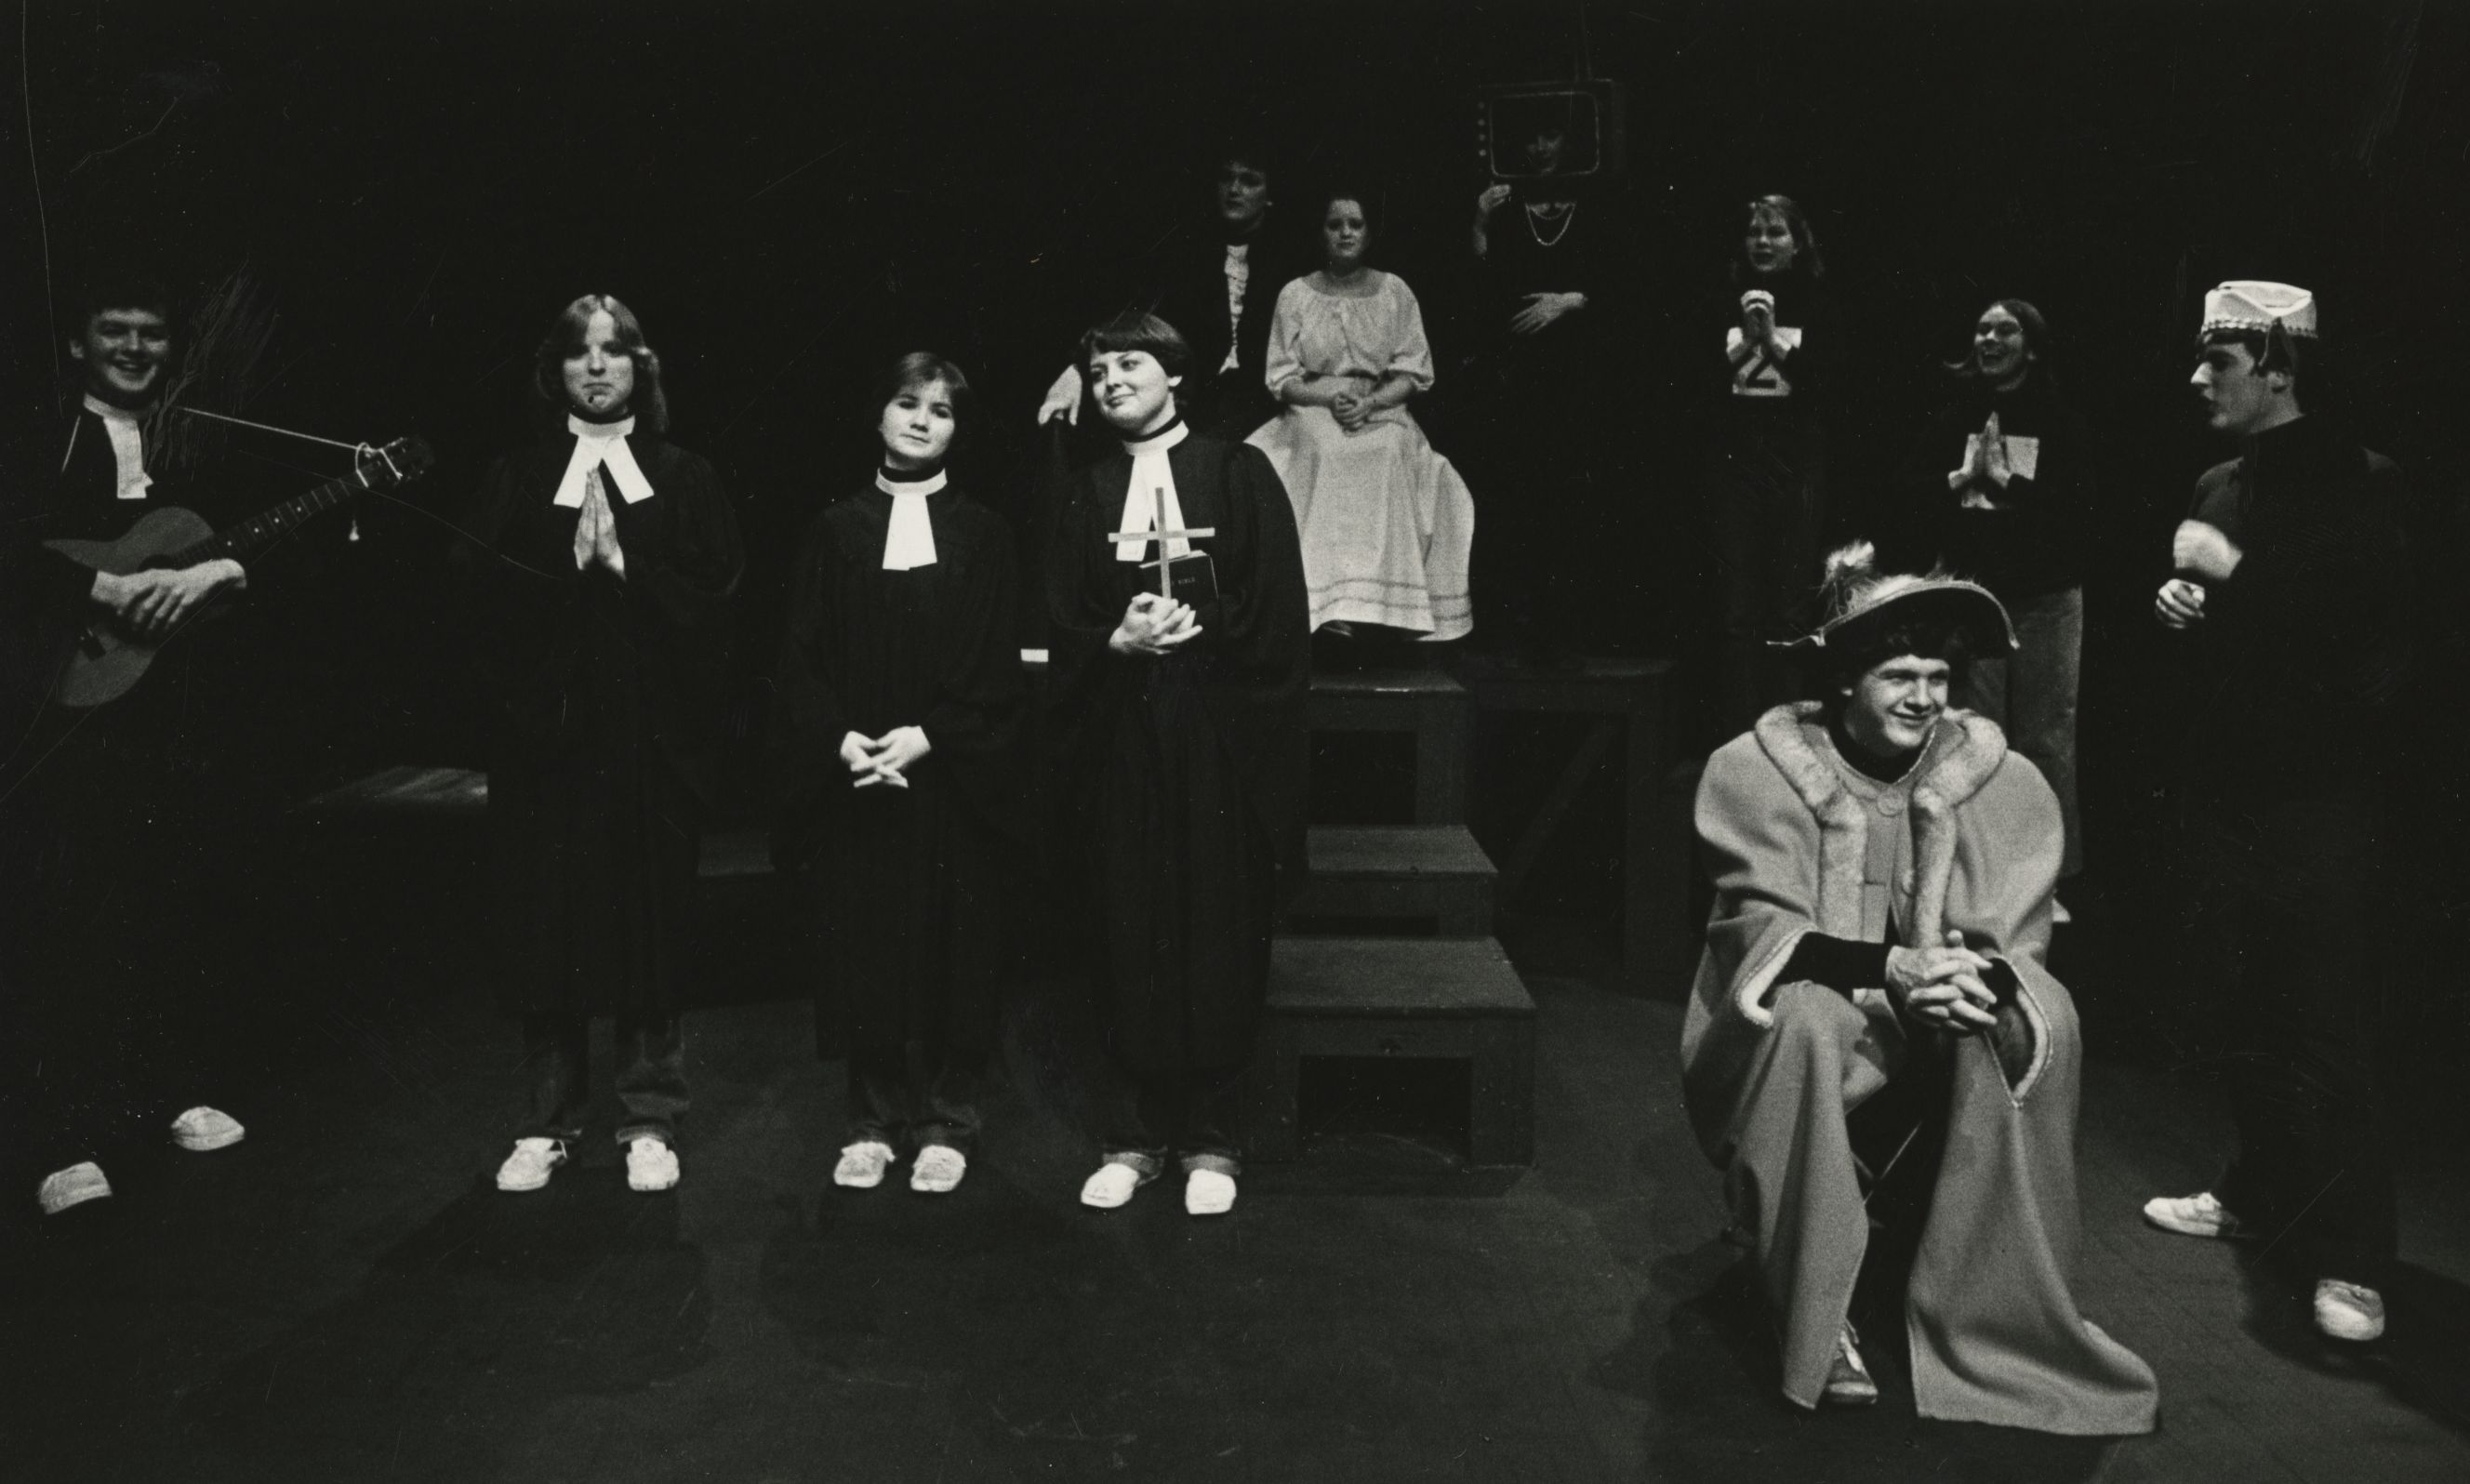 Eleven men and women on stage. They are wearing a variety of costumes, including a few dressed as clergy and one as royalty. One person in the background appears to be dressed as a television. The man standing to the left is holding a guitar.